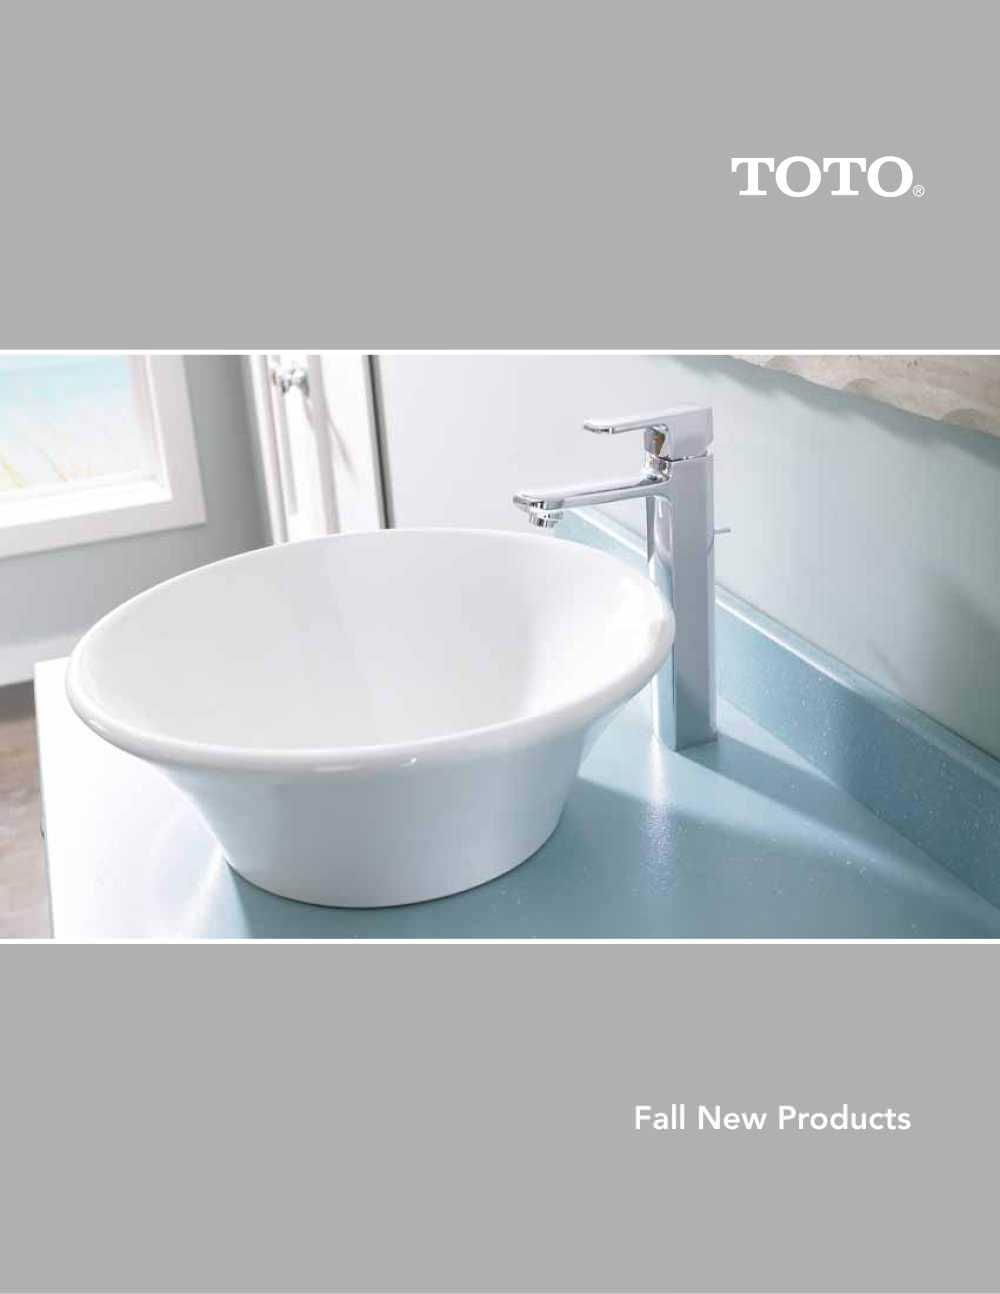 Fall New Products - Toto - PDF Catalogues | Documentation | Brochures